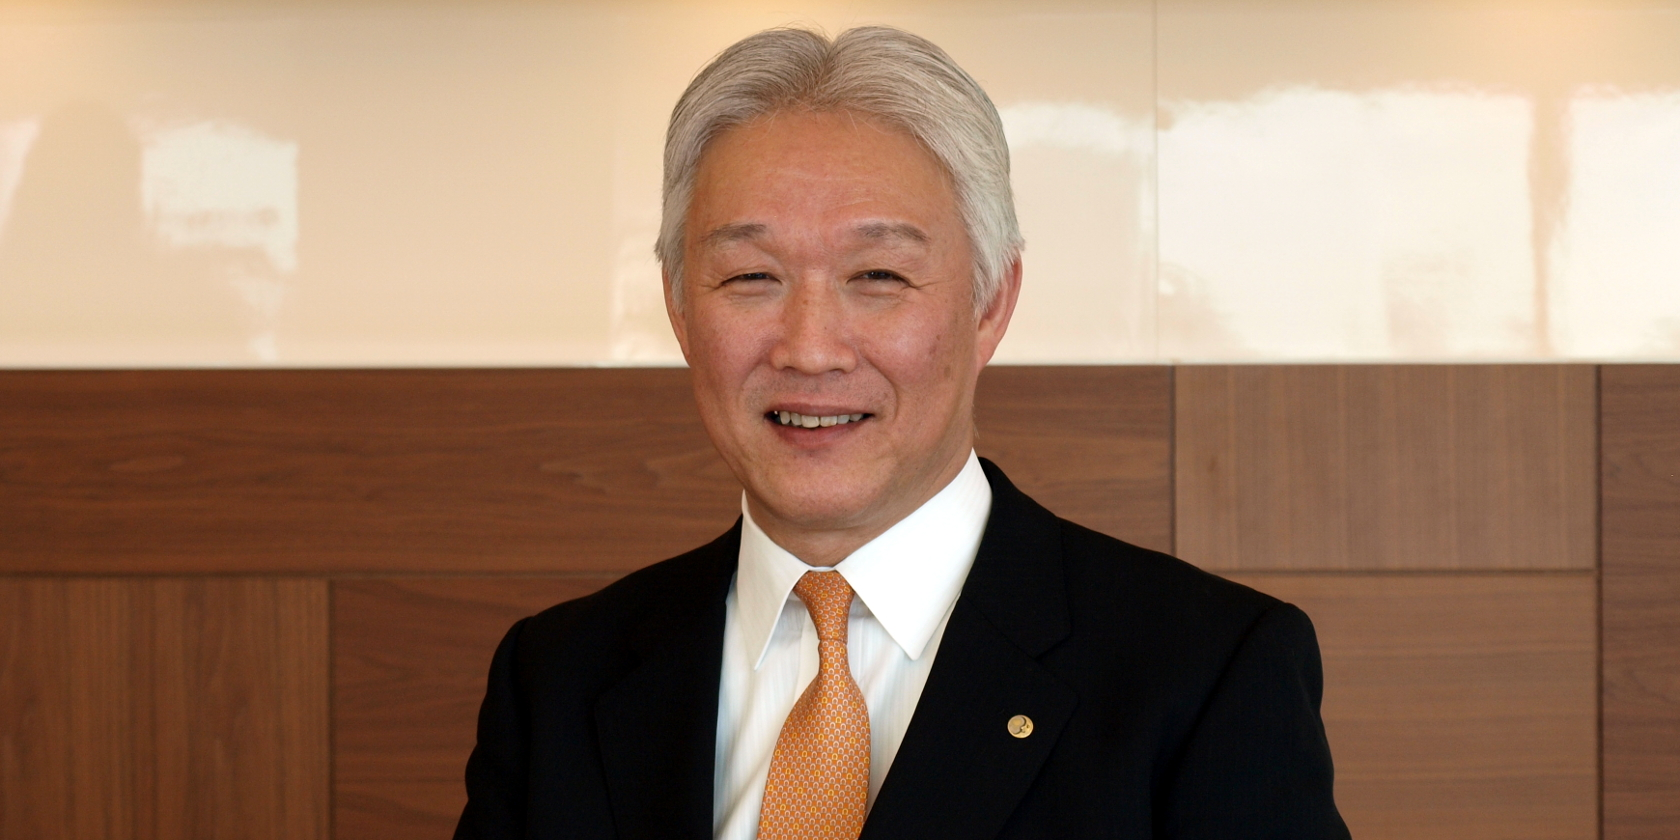 Interview: Kao CEO Michitaka Sawada Talks Changing Markets, Strategies for Business Stability